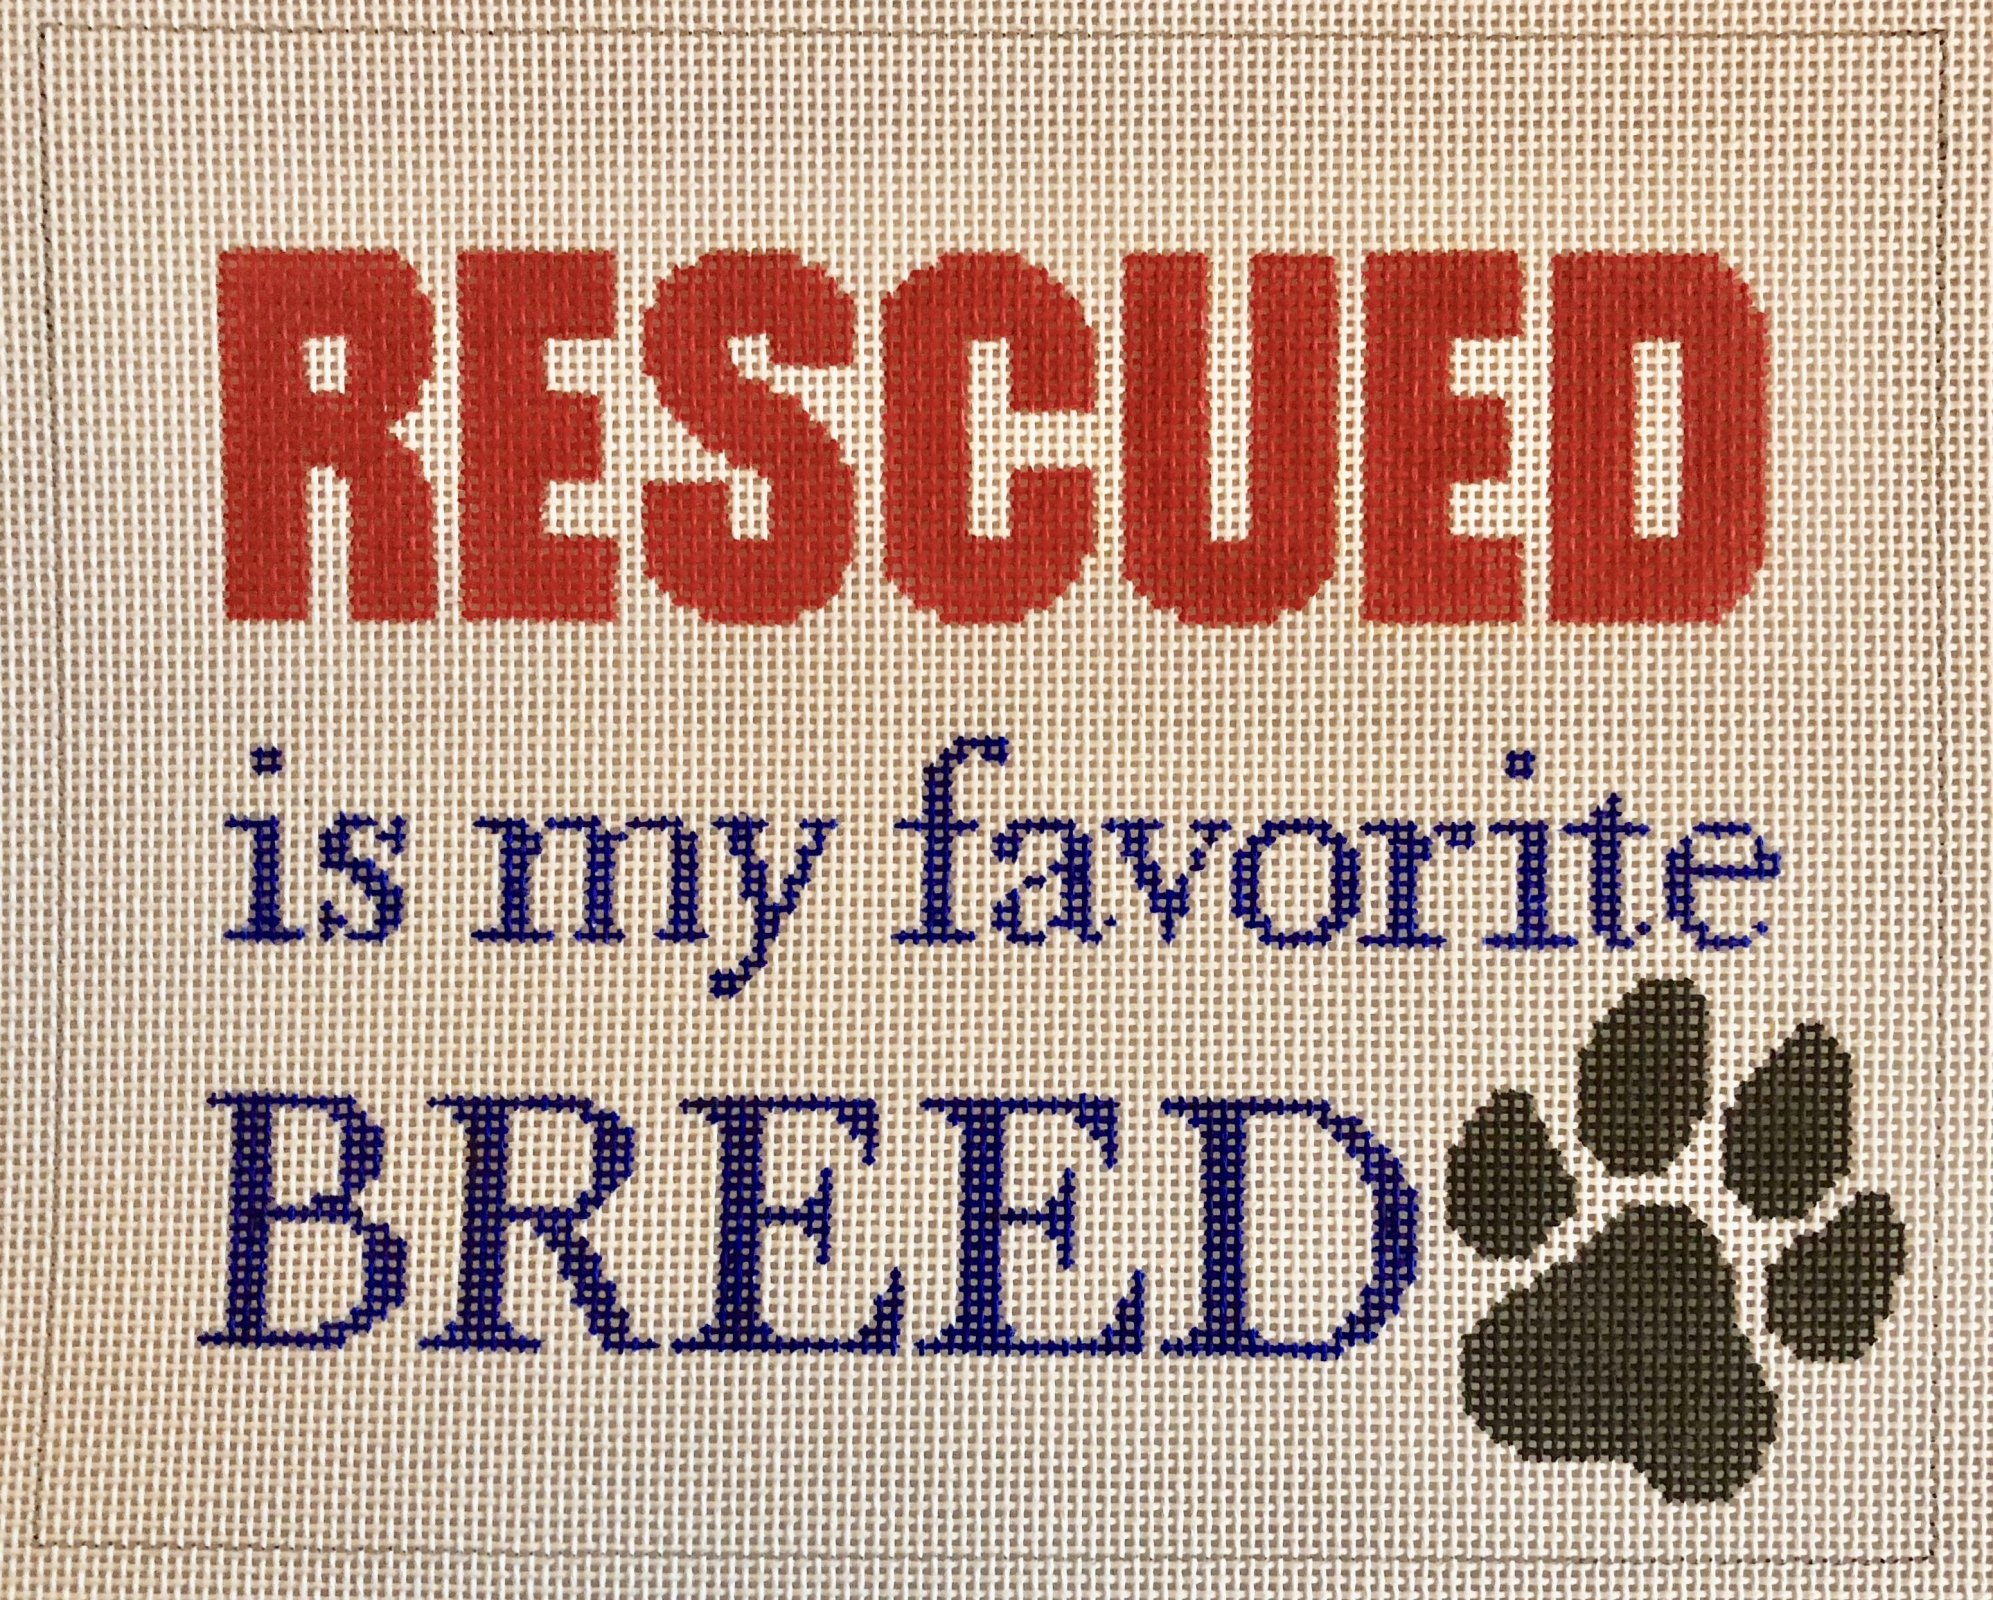 rescued...favorite breed